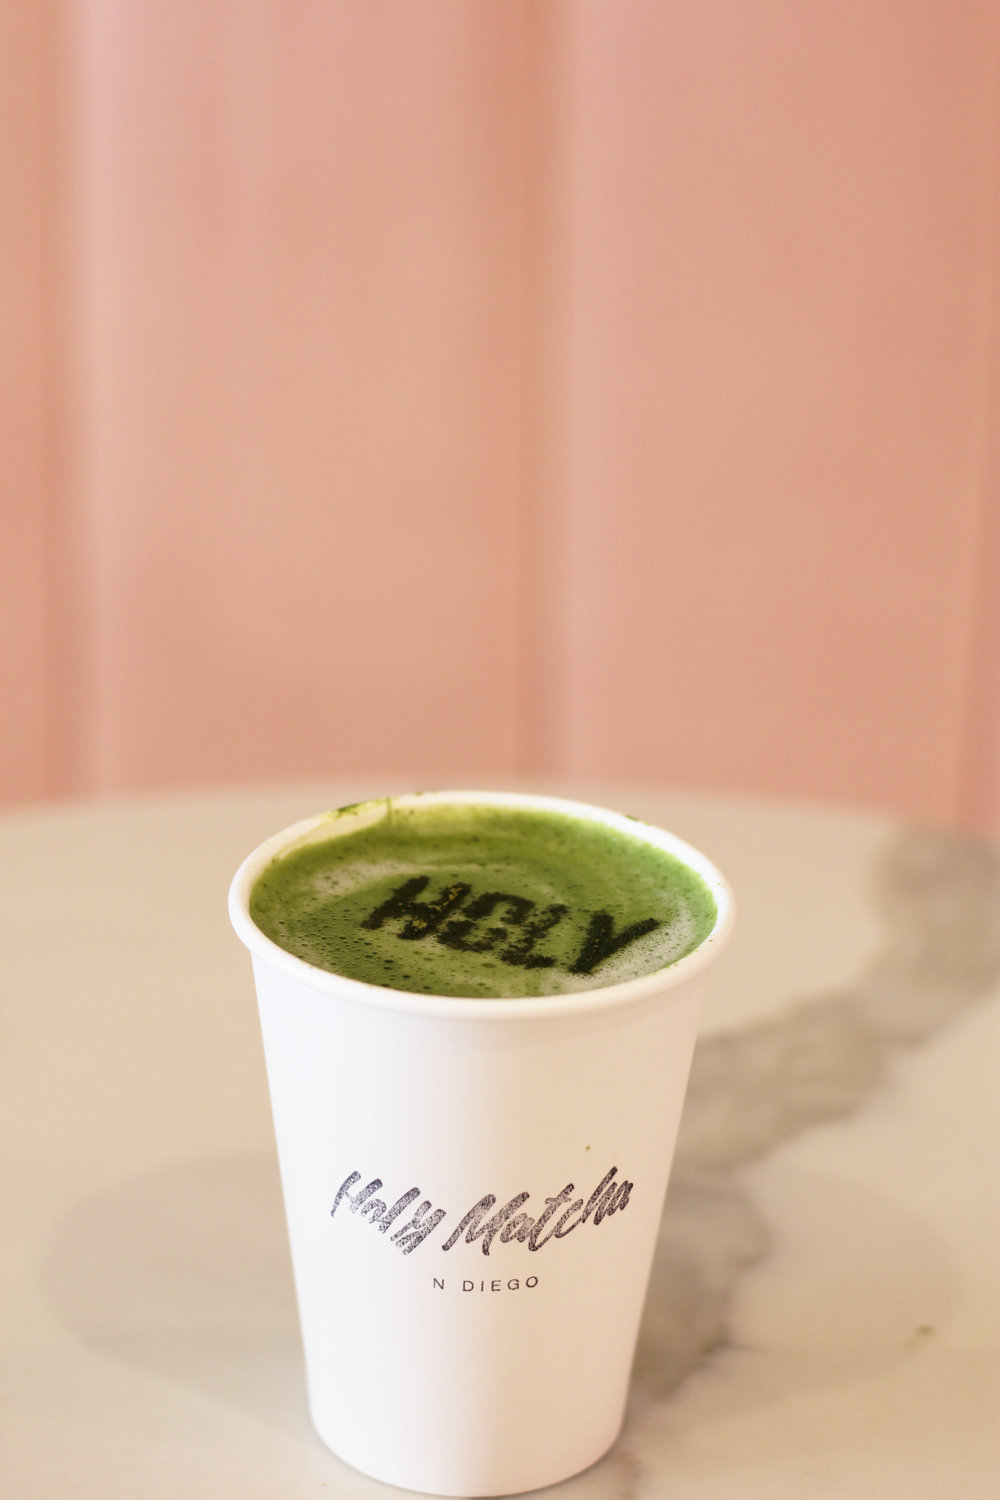 Gennifer Rose - Holy Matcha in San Diego